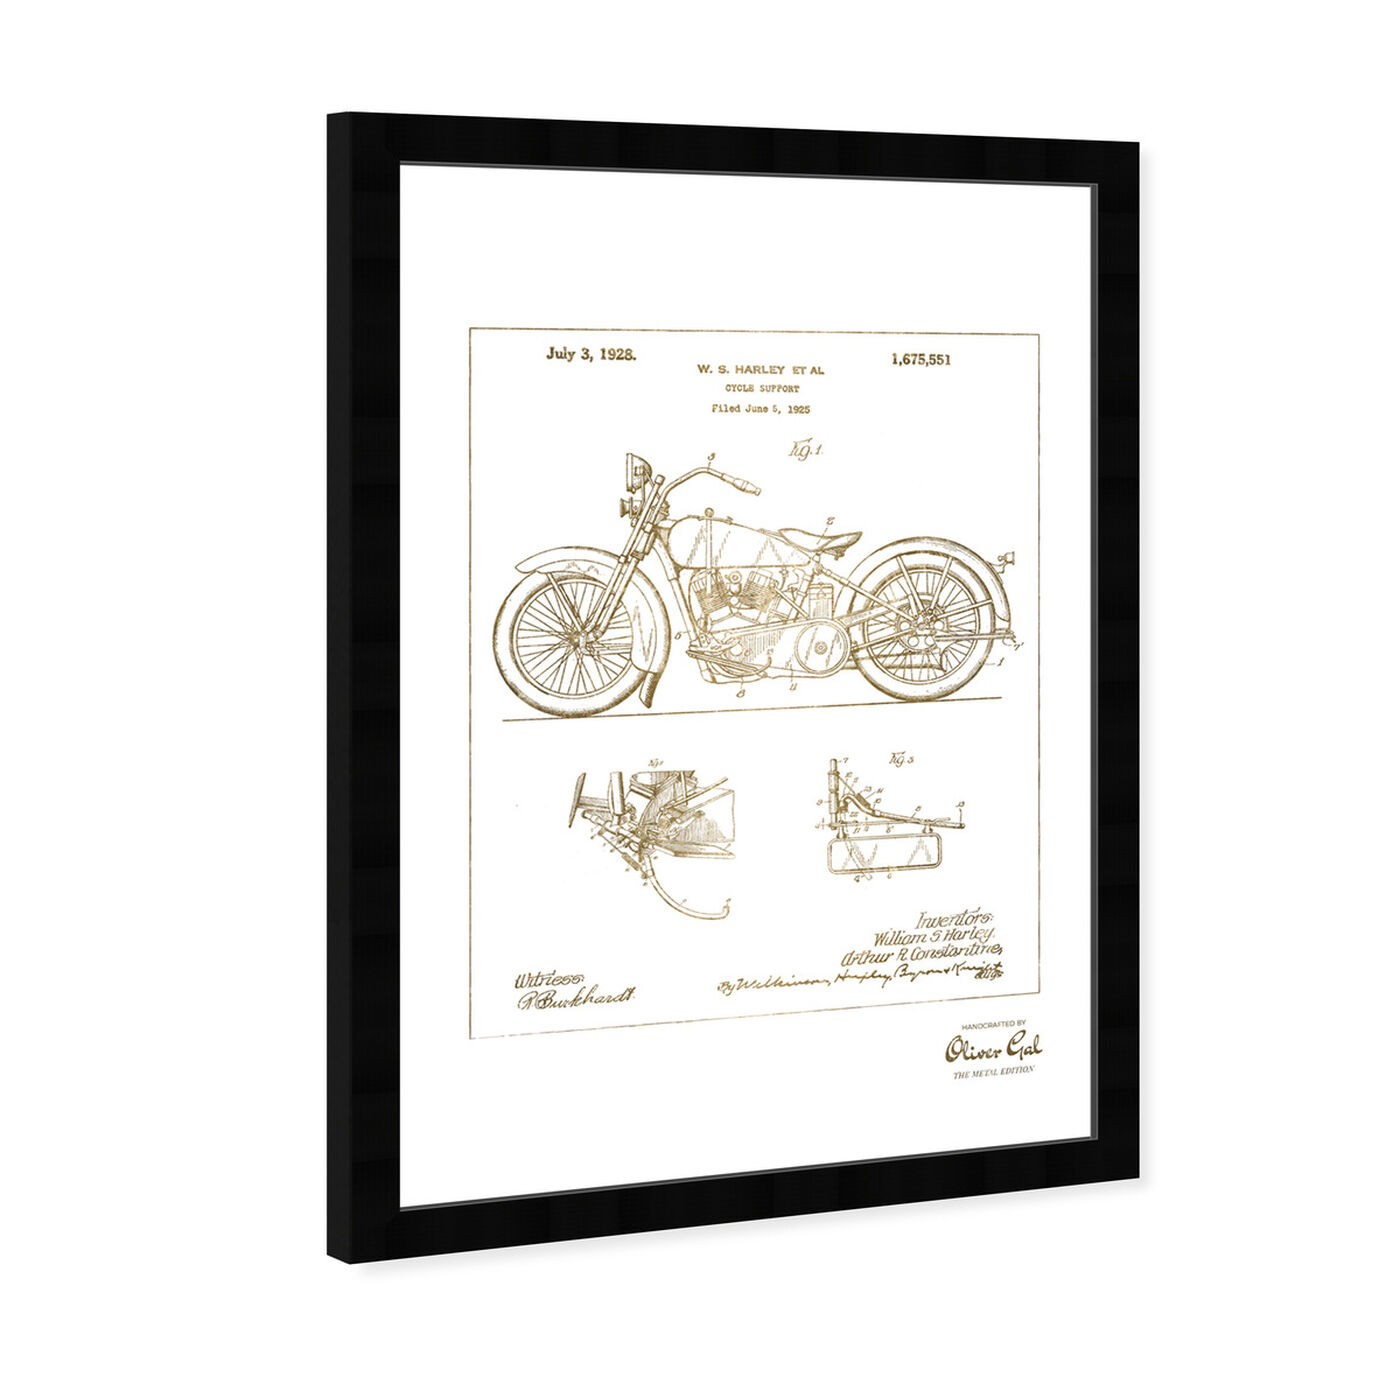 Angled view of Harley, 1928 - Gold featuring transportation and motorcycles art.